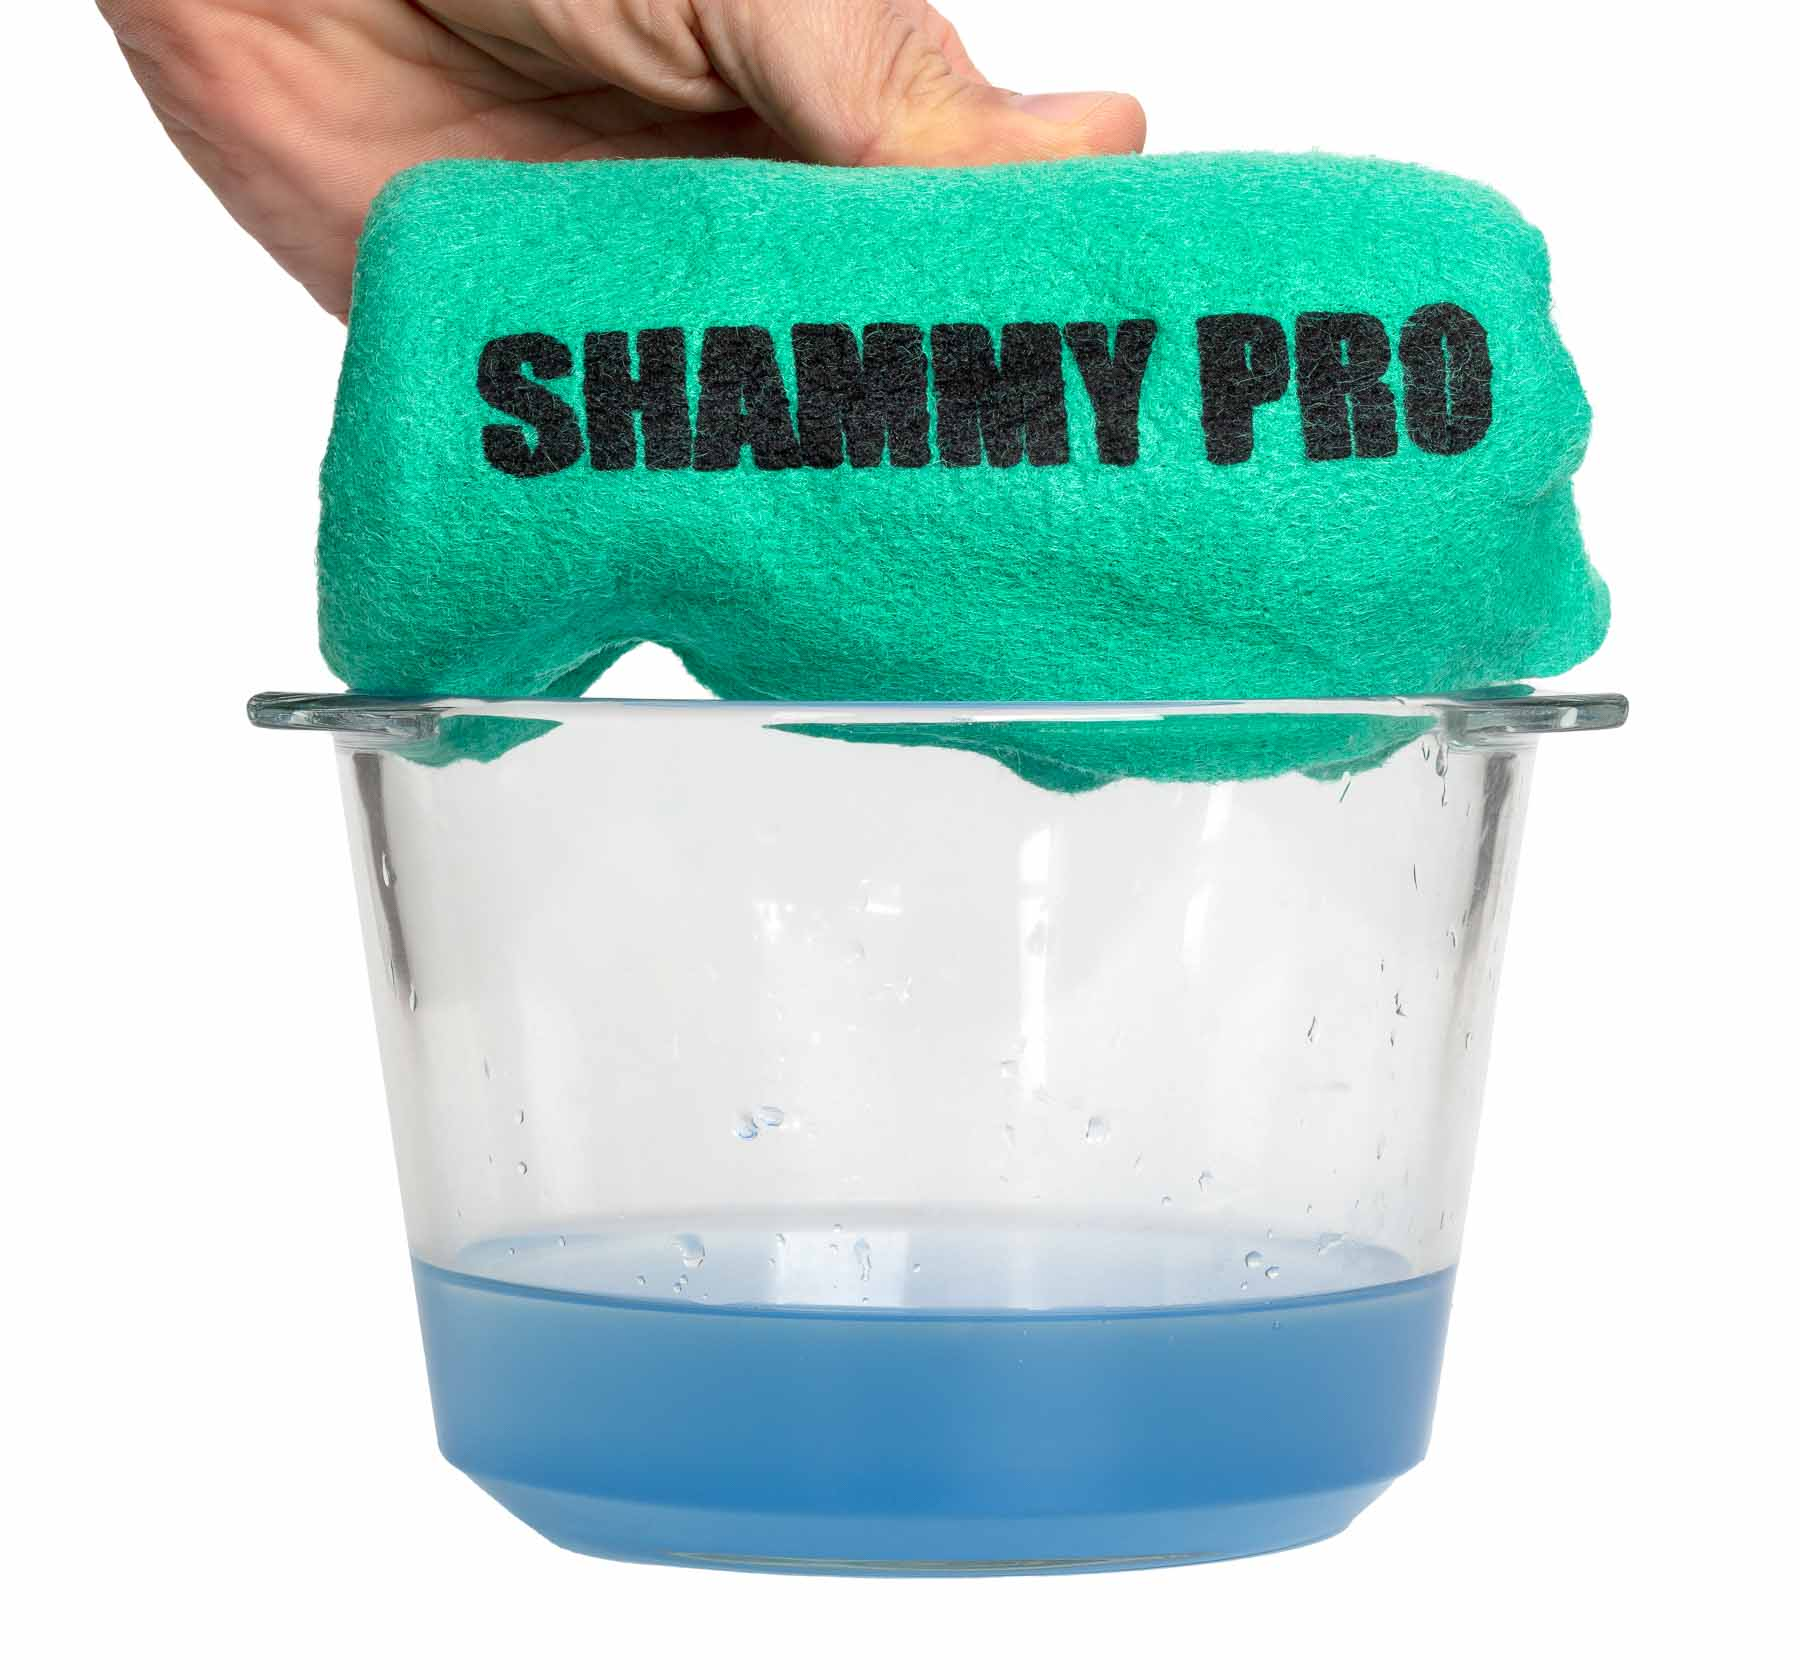 Shammy Pro Demo with Blue liquid in Bowl Shammy dry - Demo style advertising photo